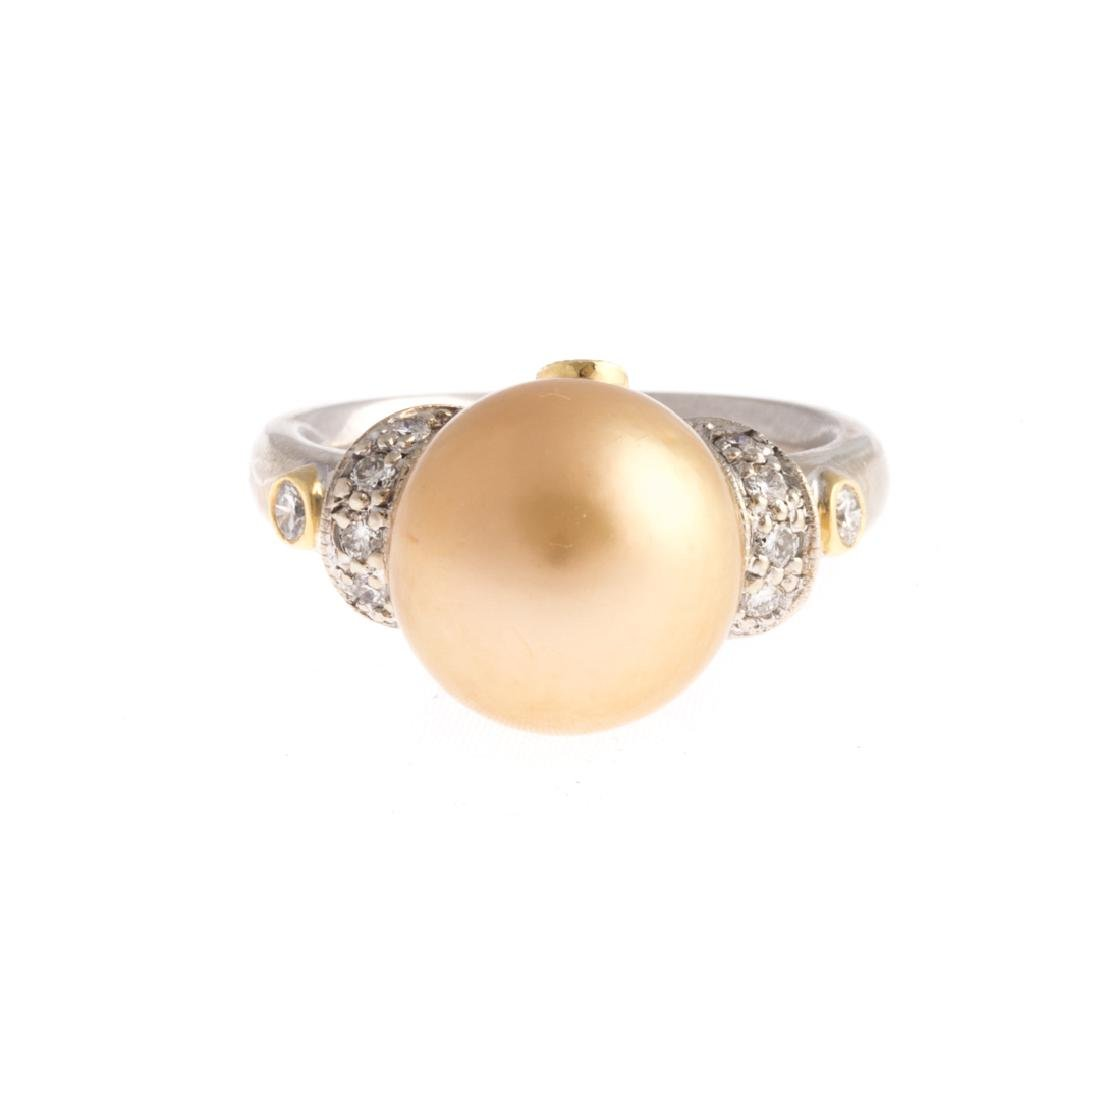 A Lady's Important Golden South Sea Pearl Ring